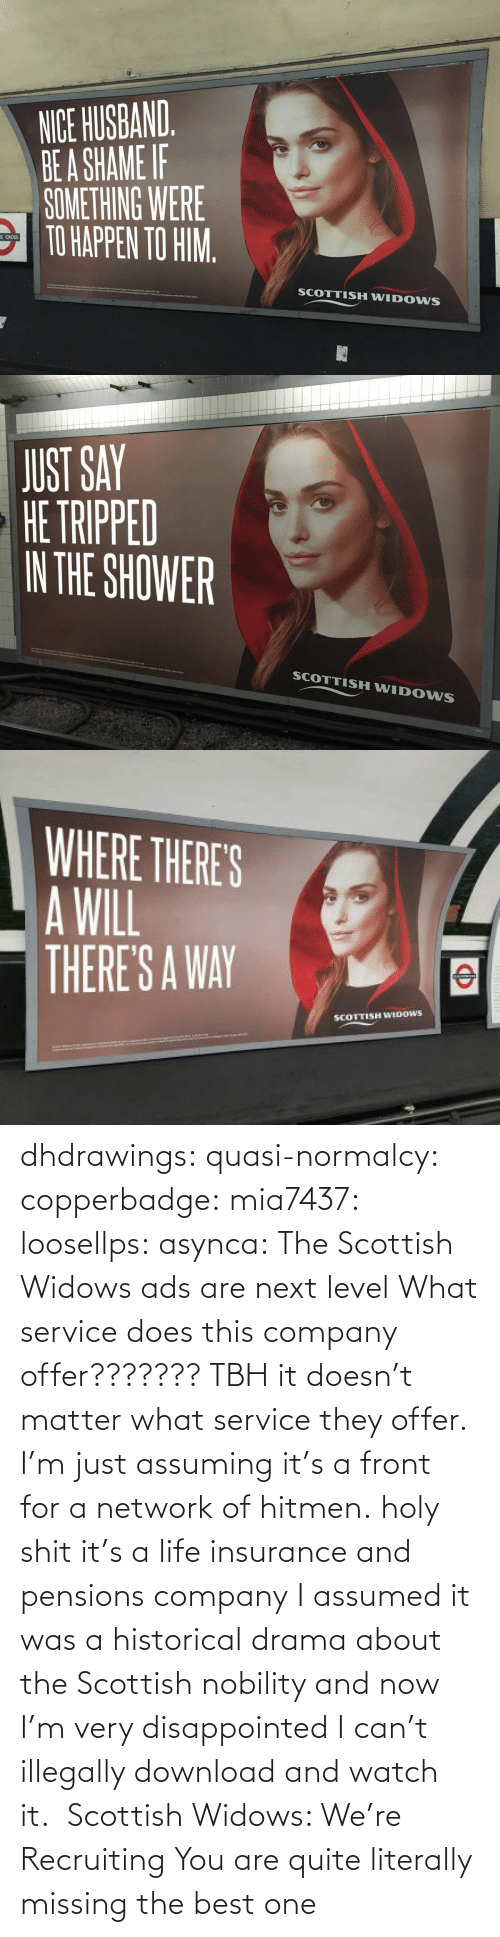 the best: dhdrawings:  quasi-normalcy:  copperbadge:  mia7437:  loosellps:  asynca: The Scottish Widows ads are next level What service does this company offer??????? TBH it doesn't matter what service they offer. I'm just assuming it's a front for a network of hitmen.  holy shit it's a life insurance and pensions company  I assumed it was a historical drama about the Scottish nobility and now I'm very disappointed I can't illegally download and watch it.     Scottish Widows: We're Recruiting    You are quite literally missing the best one